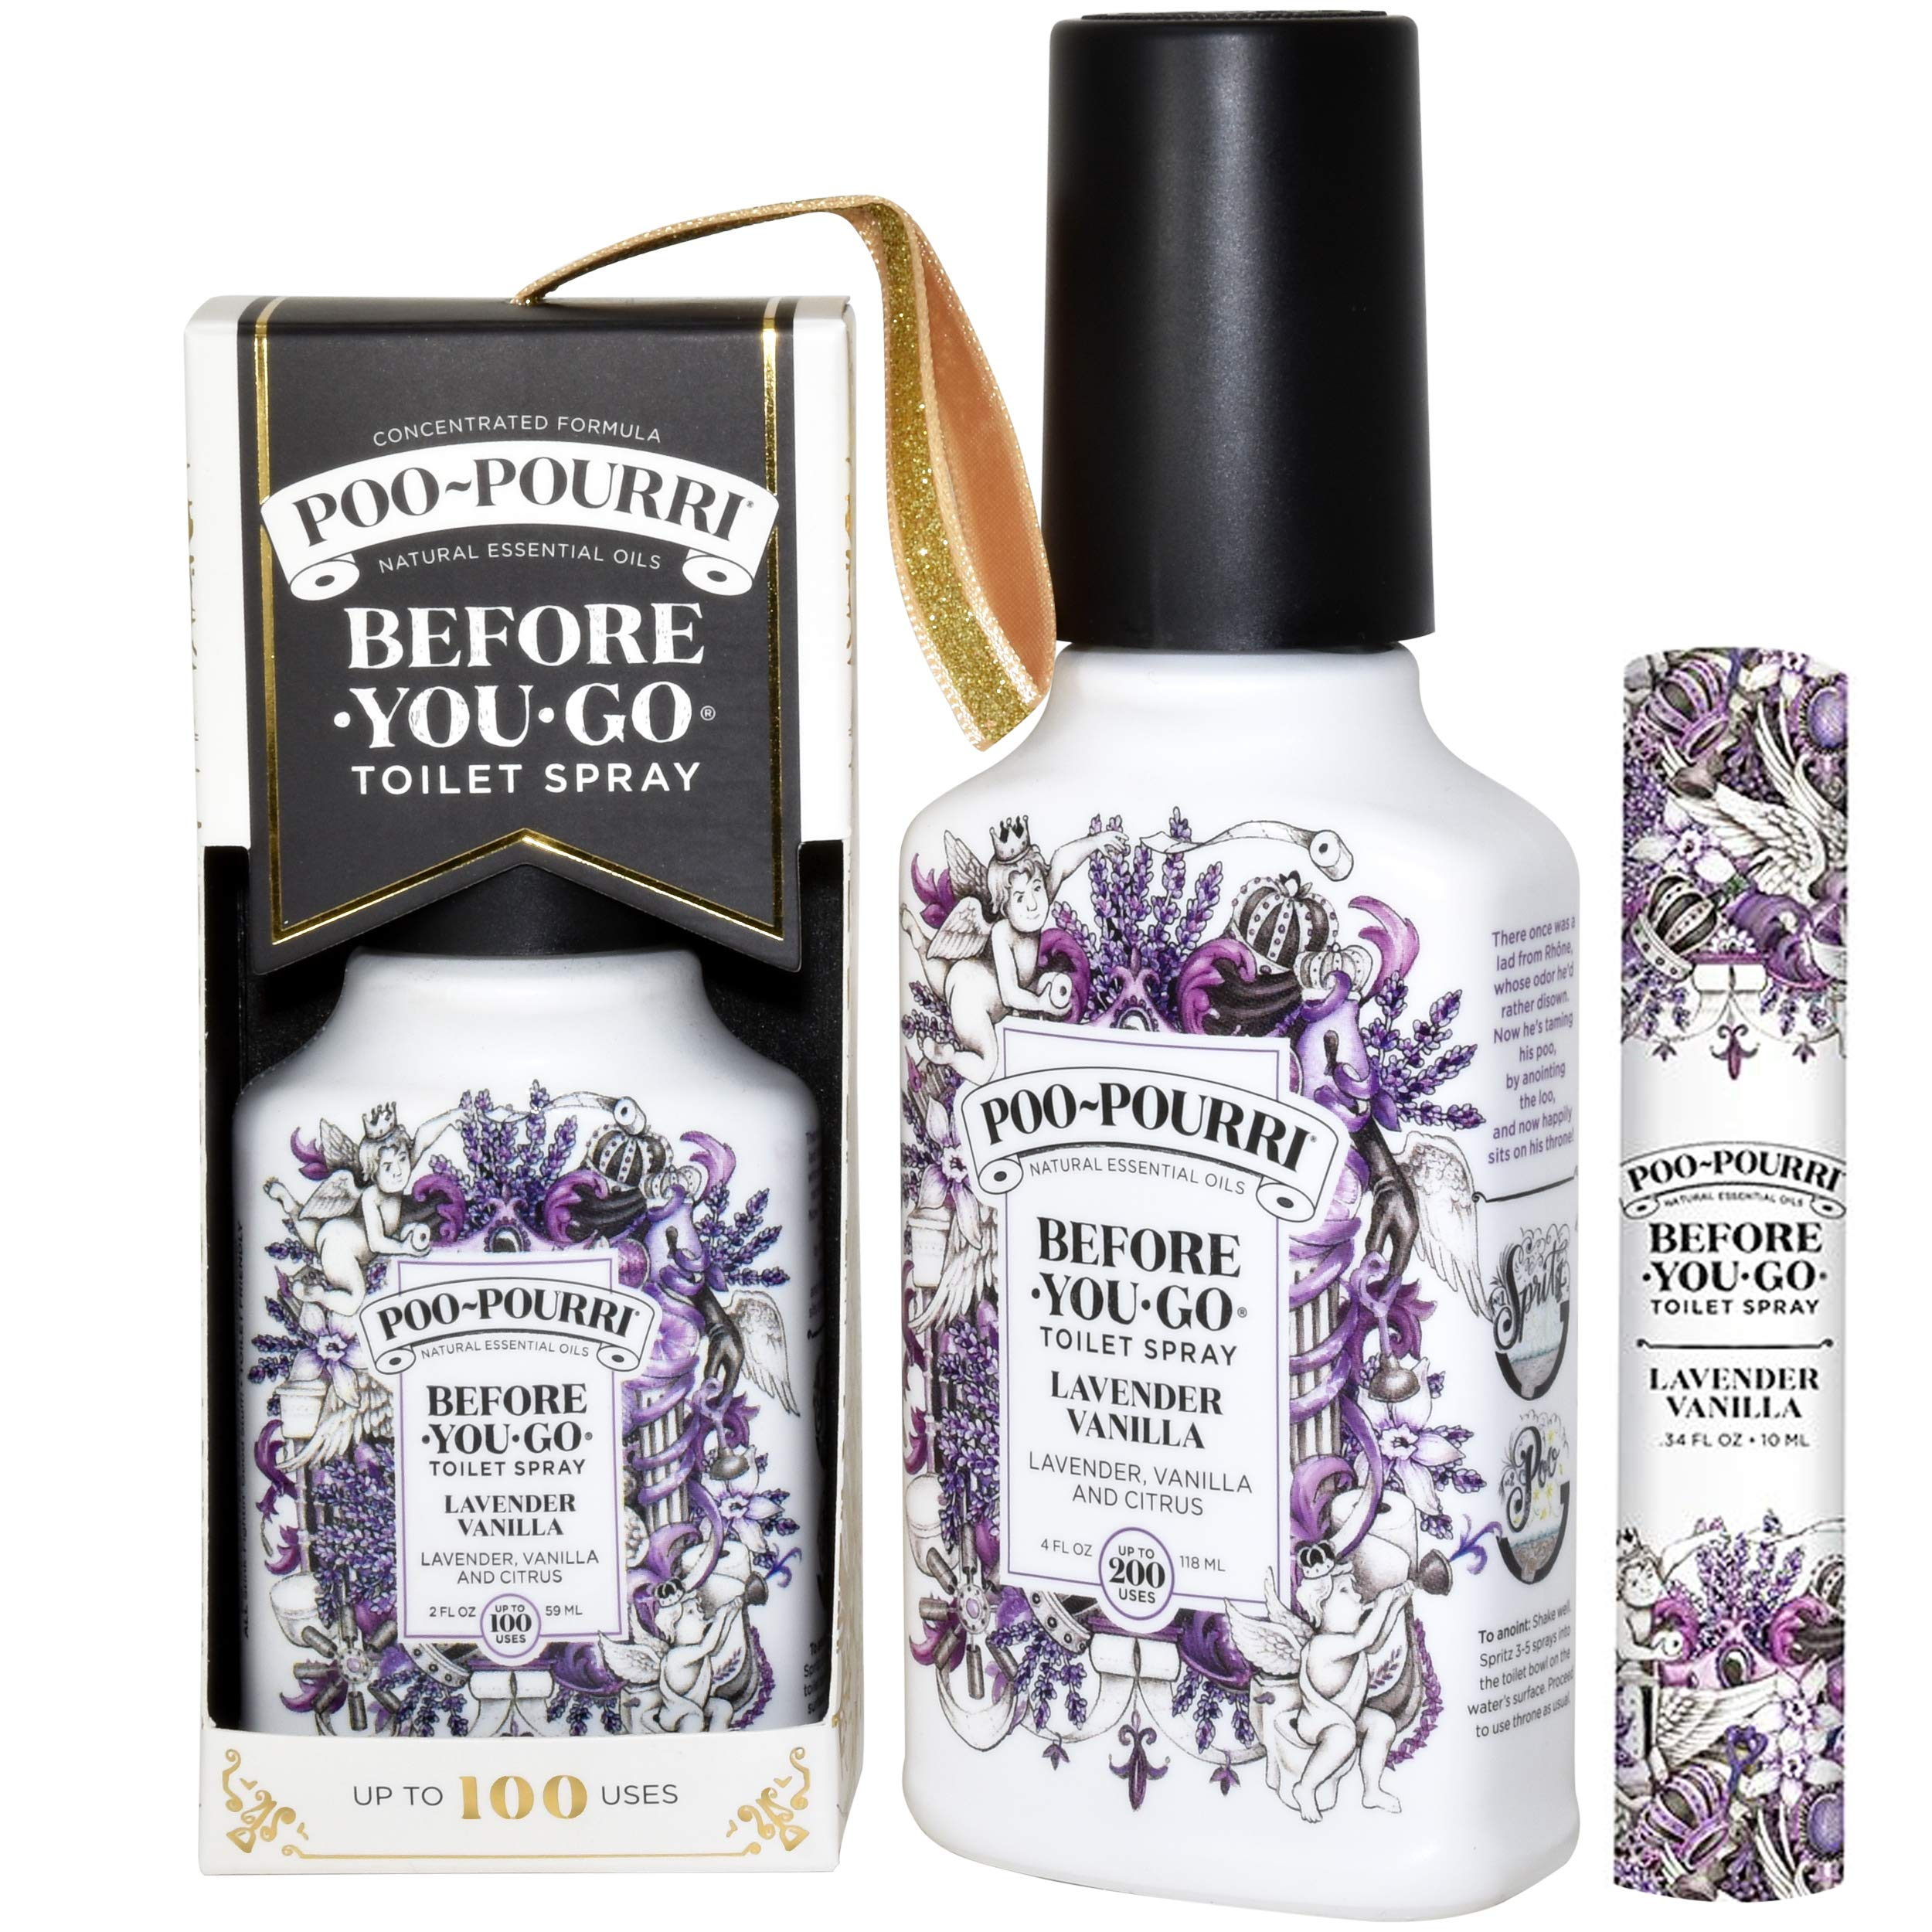 Poo-Pourri Lavender Vanilla 2 Ounce, 4 Ounce, Travel Size Spritzer, and Box by Poo-Pourri (Image #3)